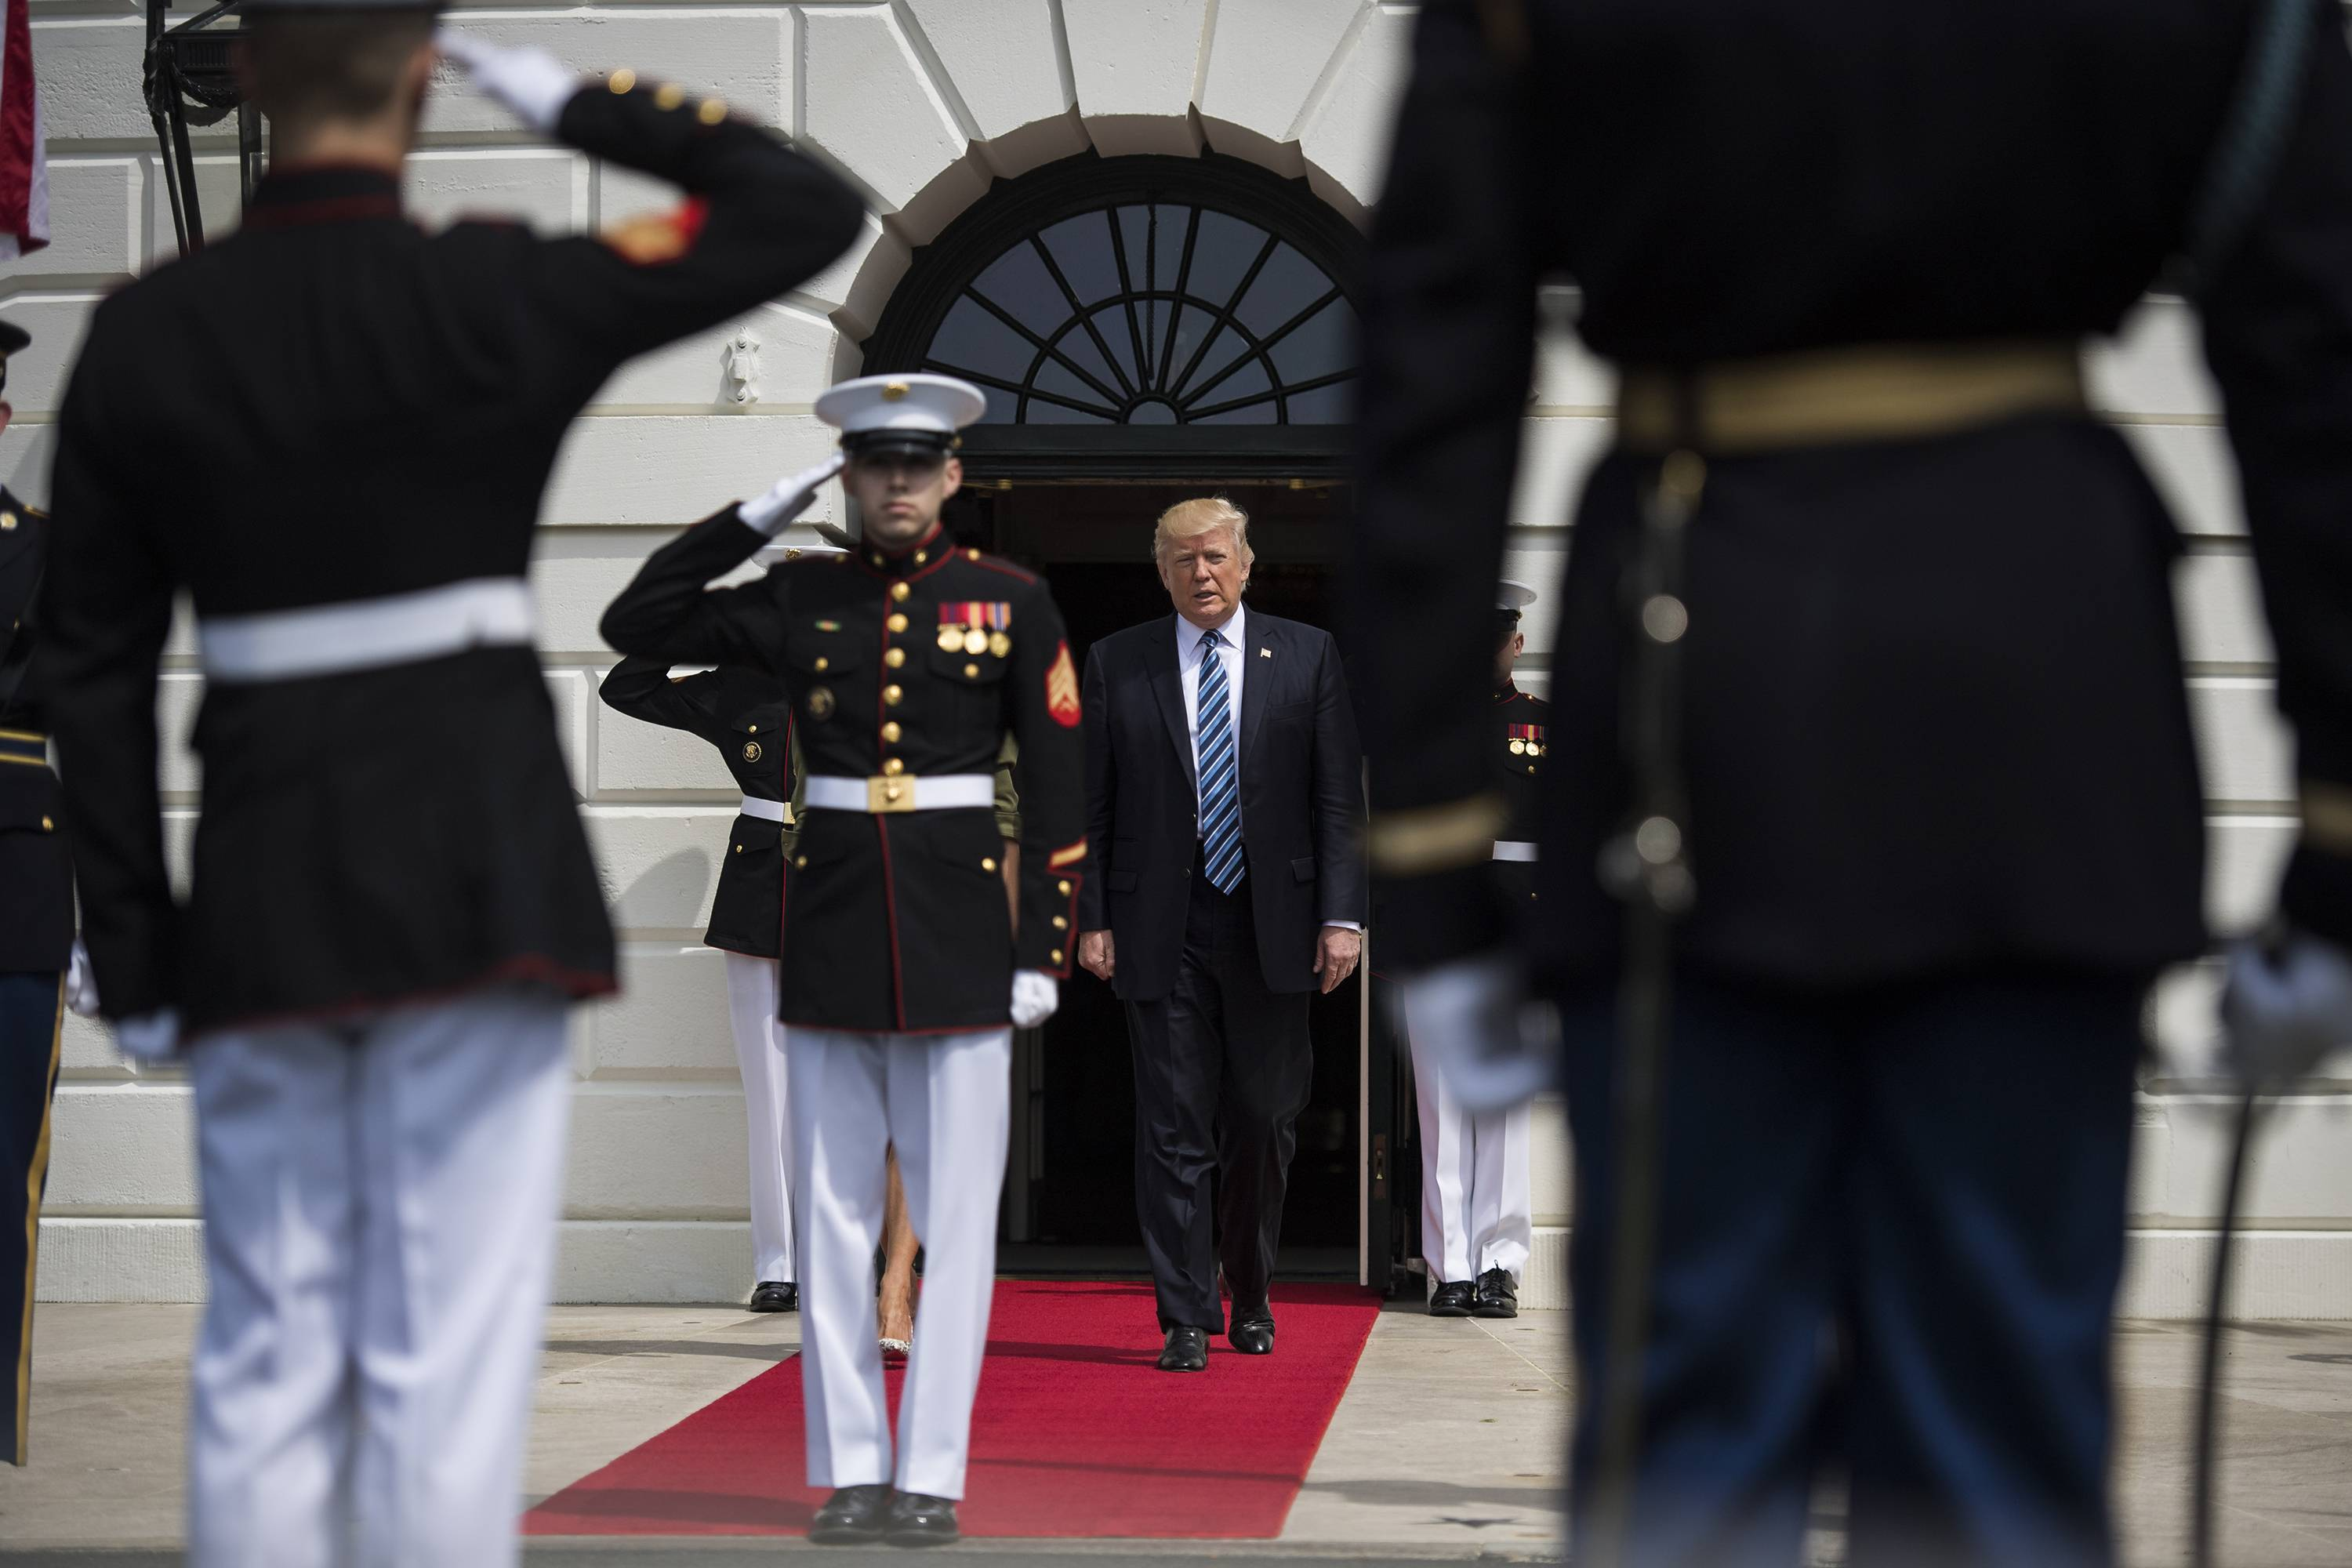 President Donald Trump walks out to greet Argentine President Mauricio Macri and his wife, Juliana Awada, at the White House on Thursday.